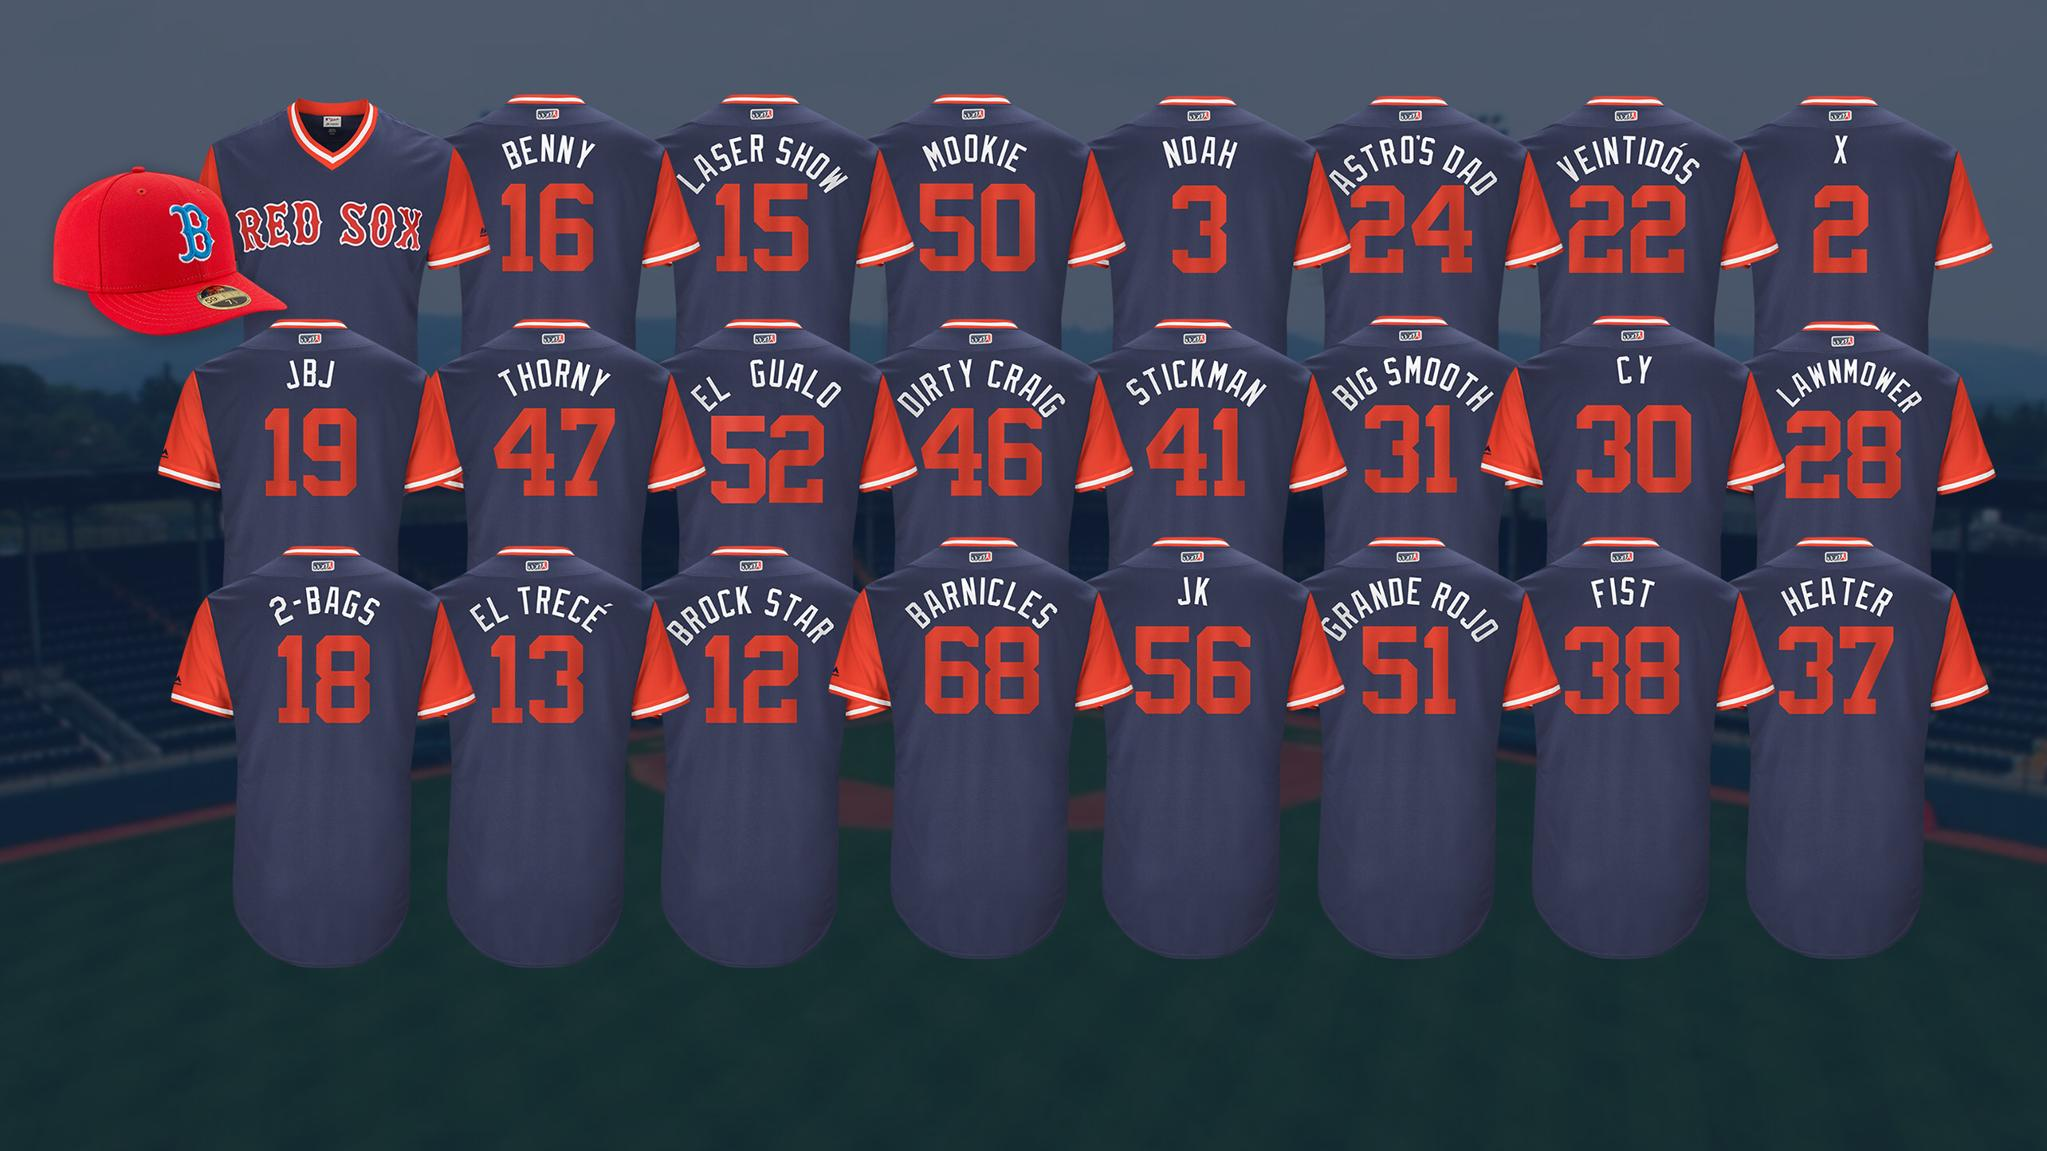 We got nicknames! ��  #PlayersWeekend details: https://t.co/5n3xOfdbA8 https://t.co/jloQcUKSqi